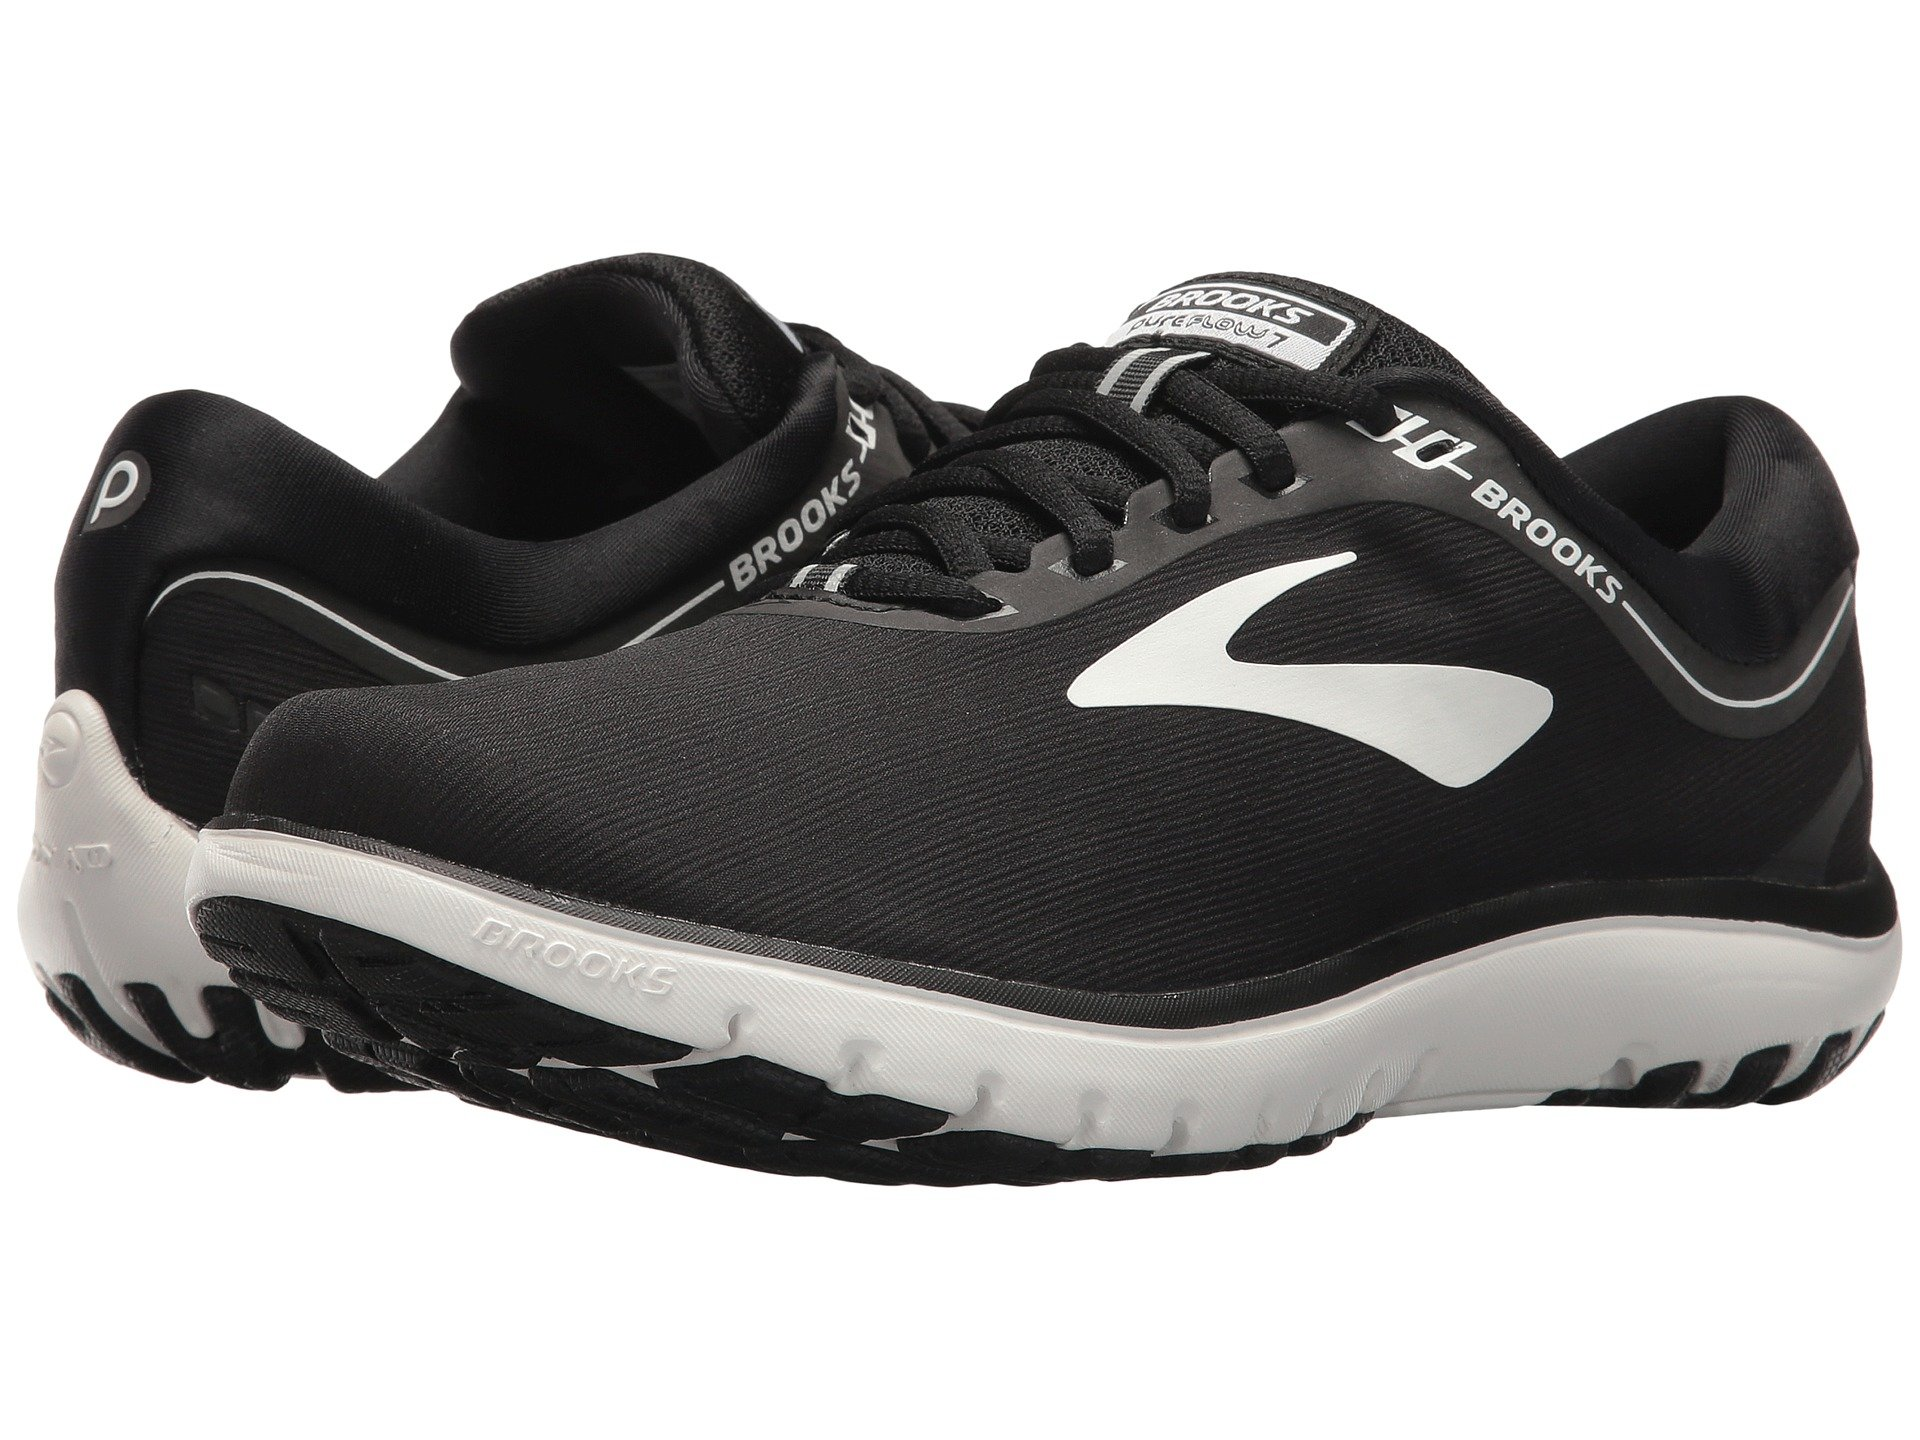 8b9a823e1d568 Women s Brooks Sneakers   Athletic Shoes + FREE SHIPPING